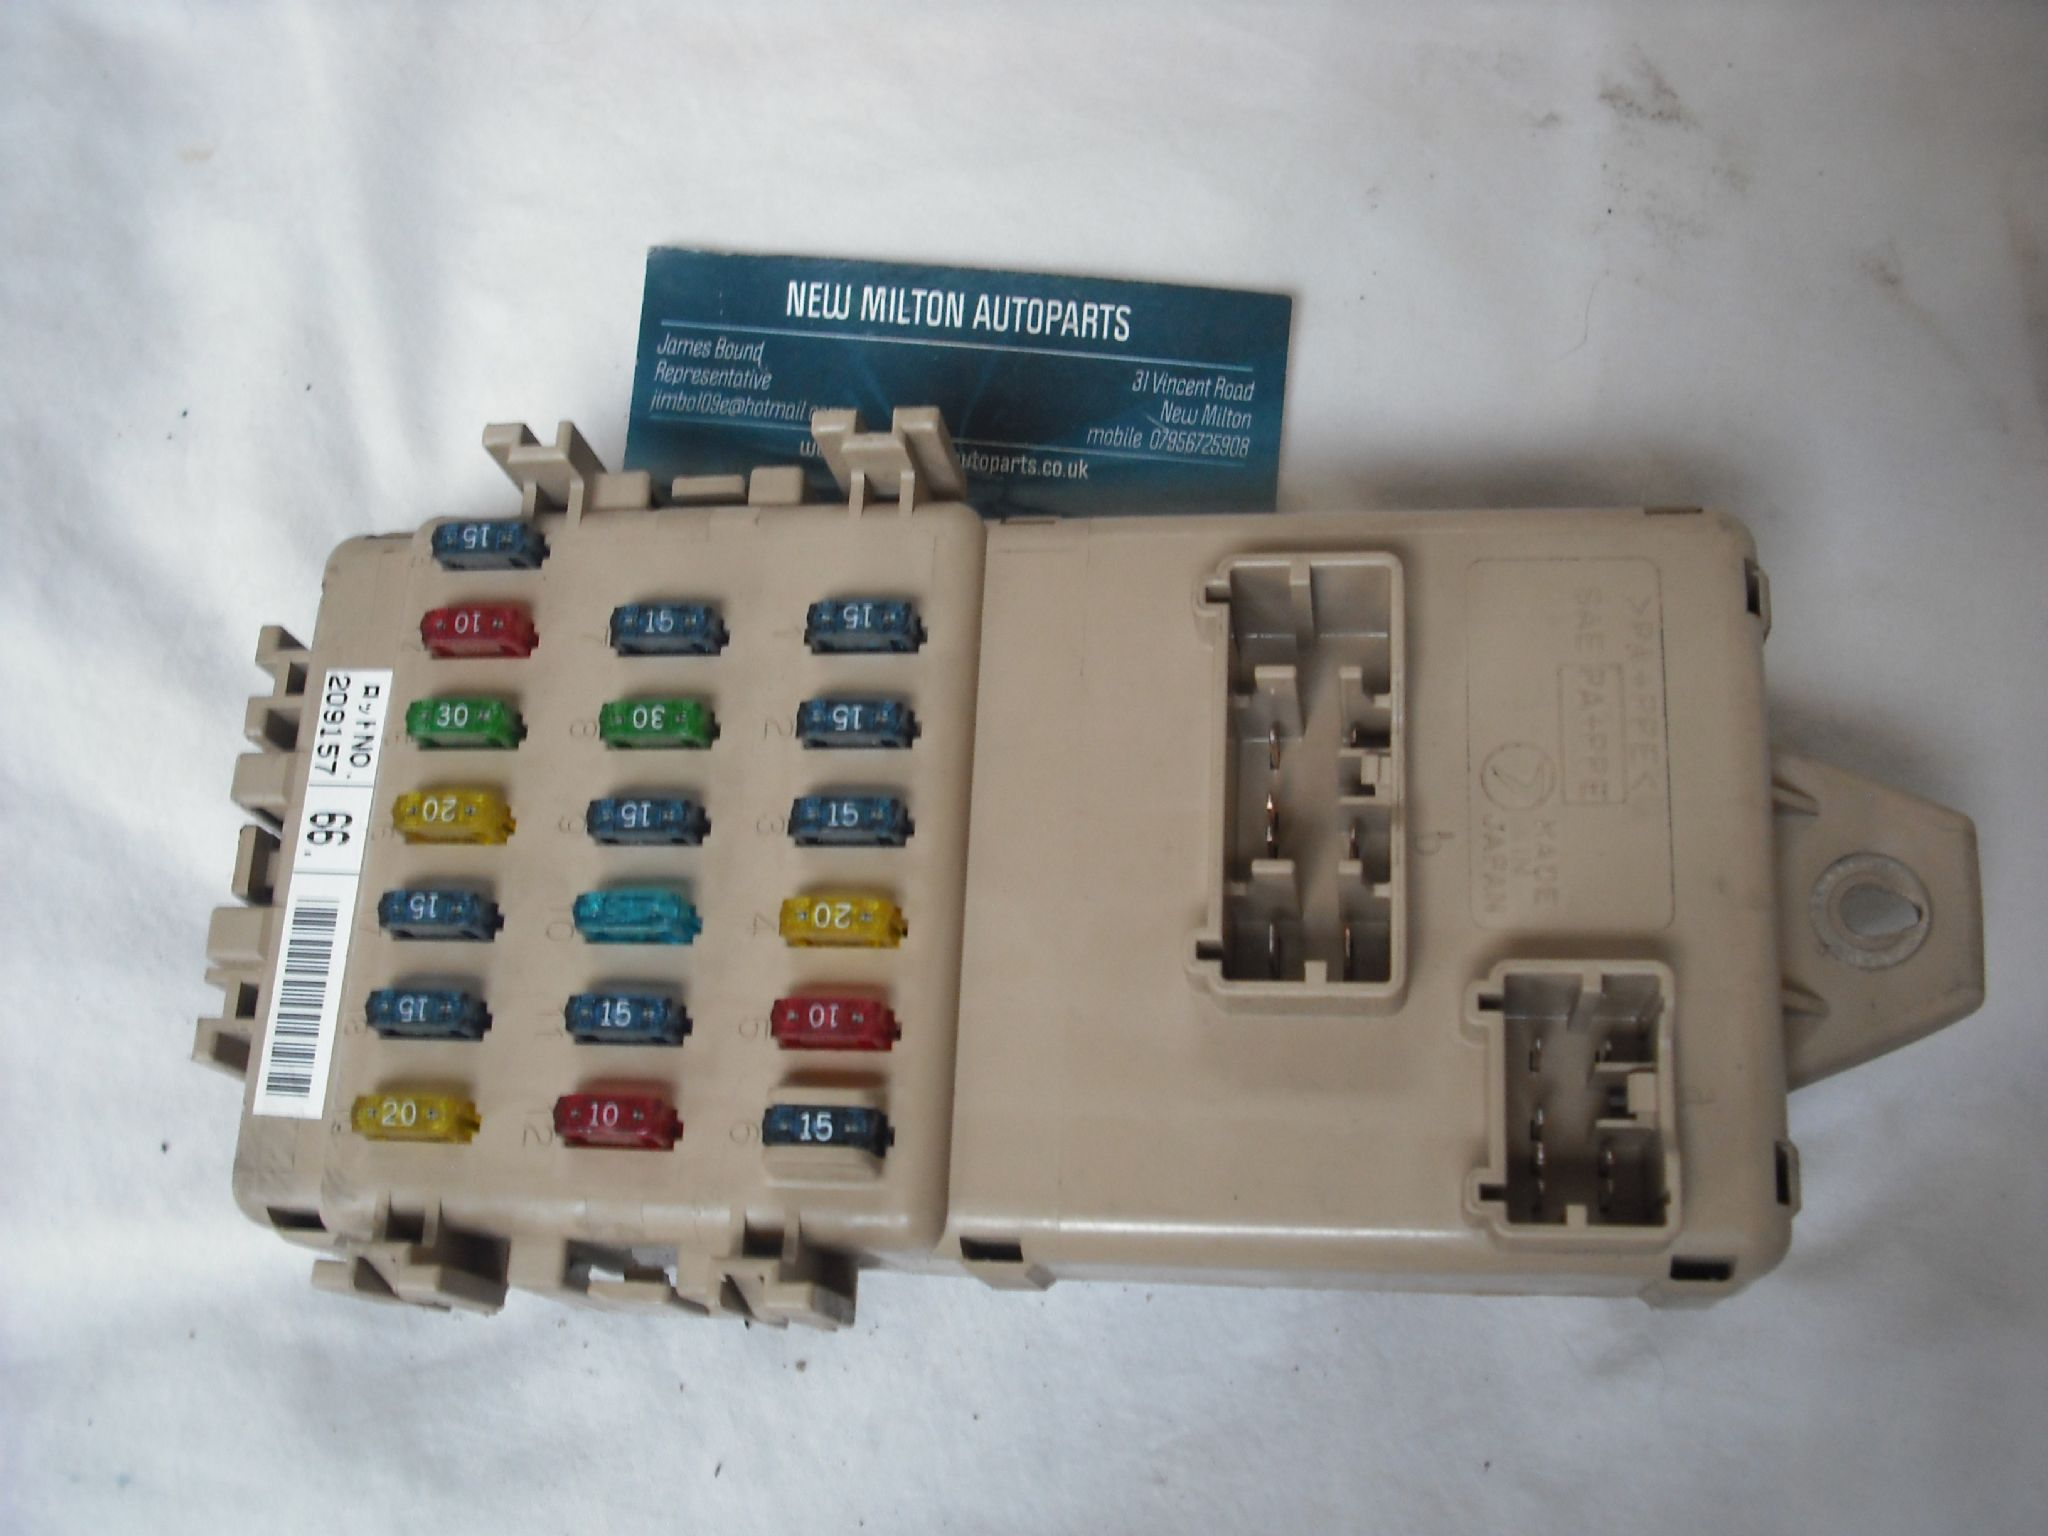 Subaru Legacy Outback Fuse Box Controller Module 209157 Jb200400 Components Gt Passive Fuses Circuit Protection